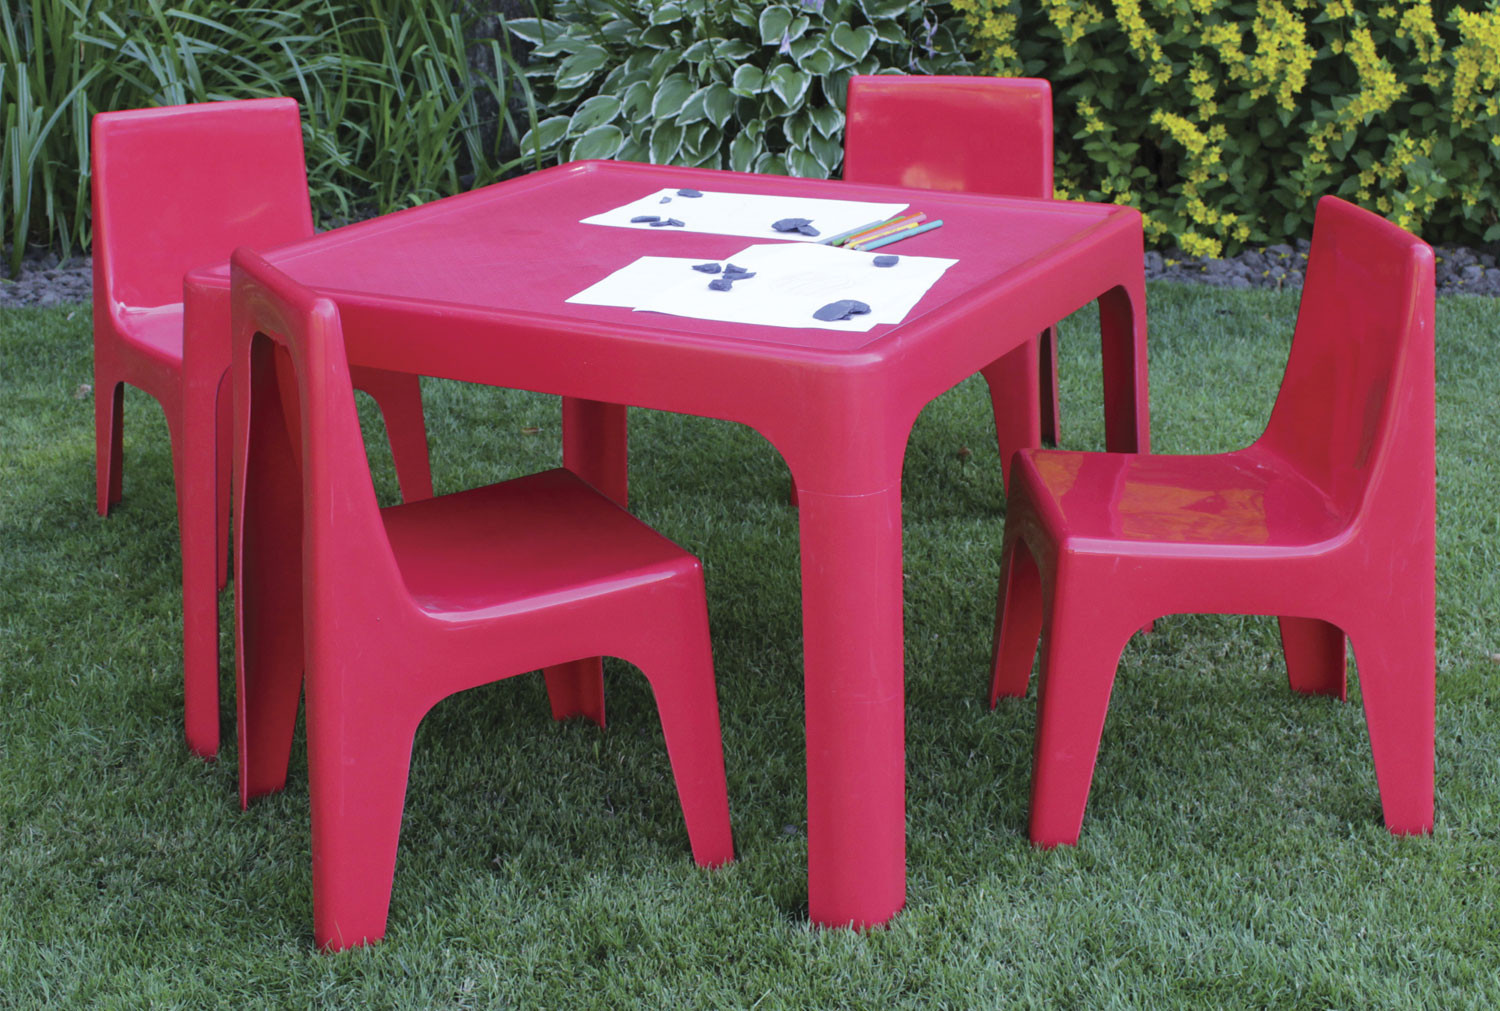 Early Years Resin Table And Chair Set - Furniture At Work®